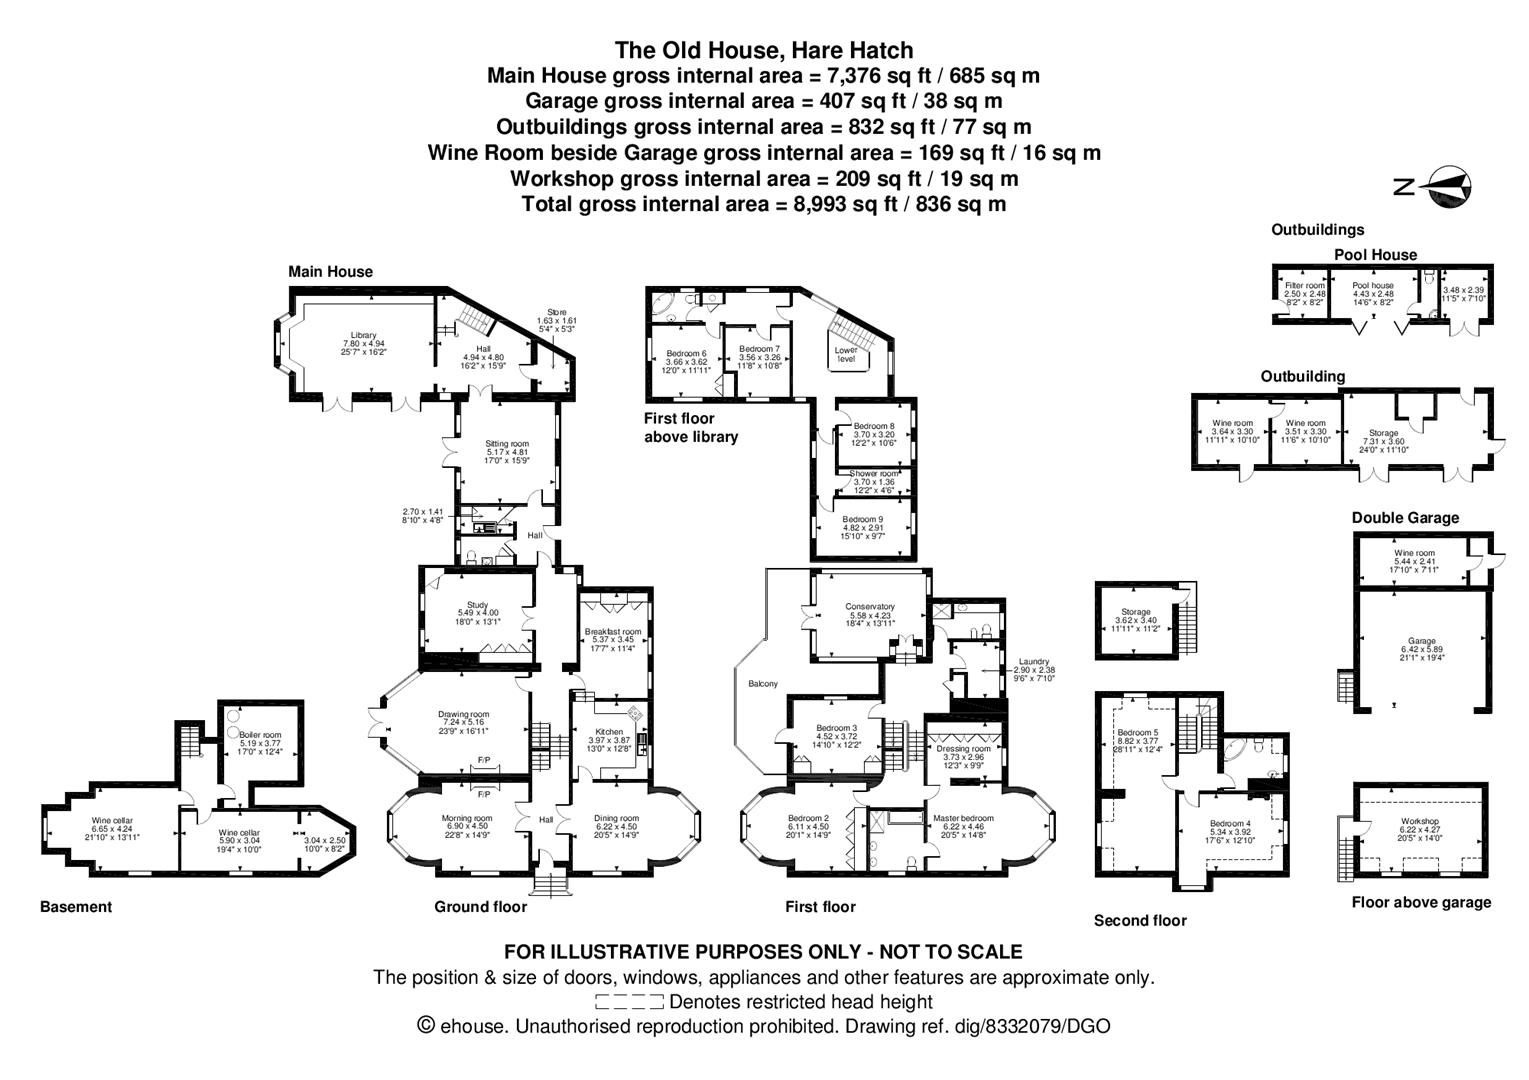 Floorplans For Milley Lane, Hare Hatch, Reading